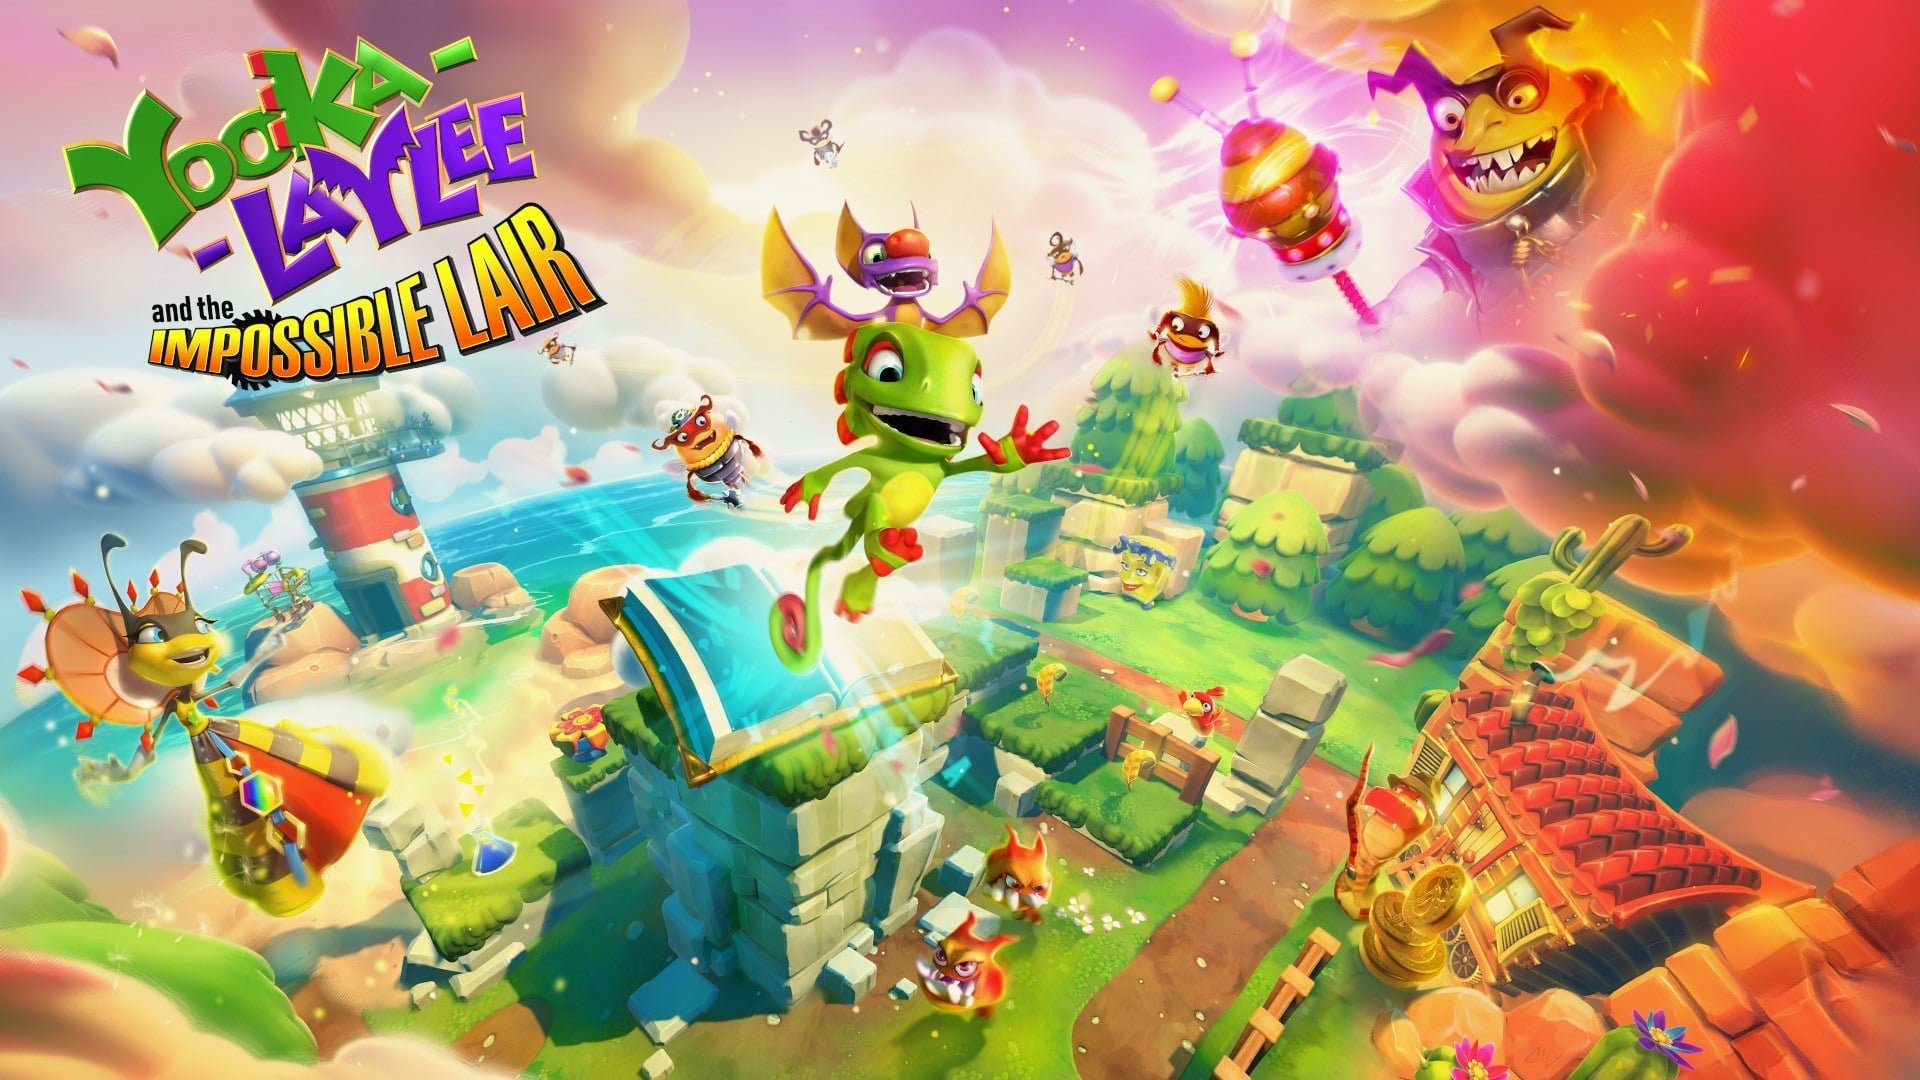 Yooka-Laylee and the Impossible Lair Achievements